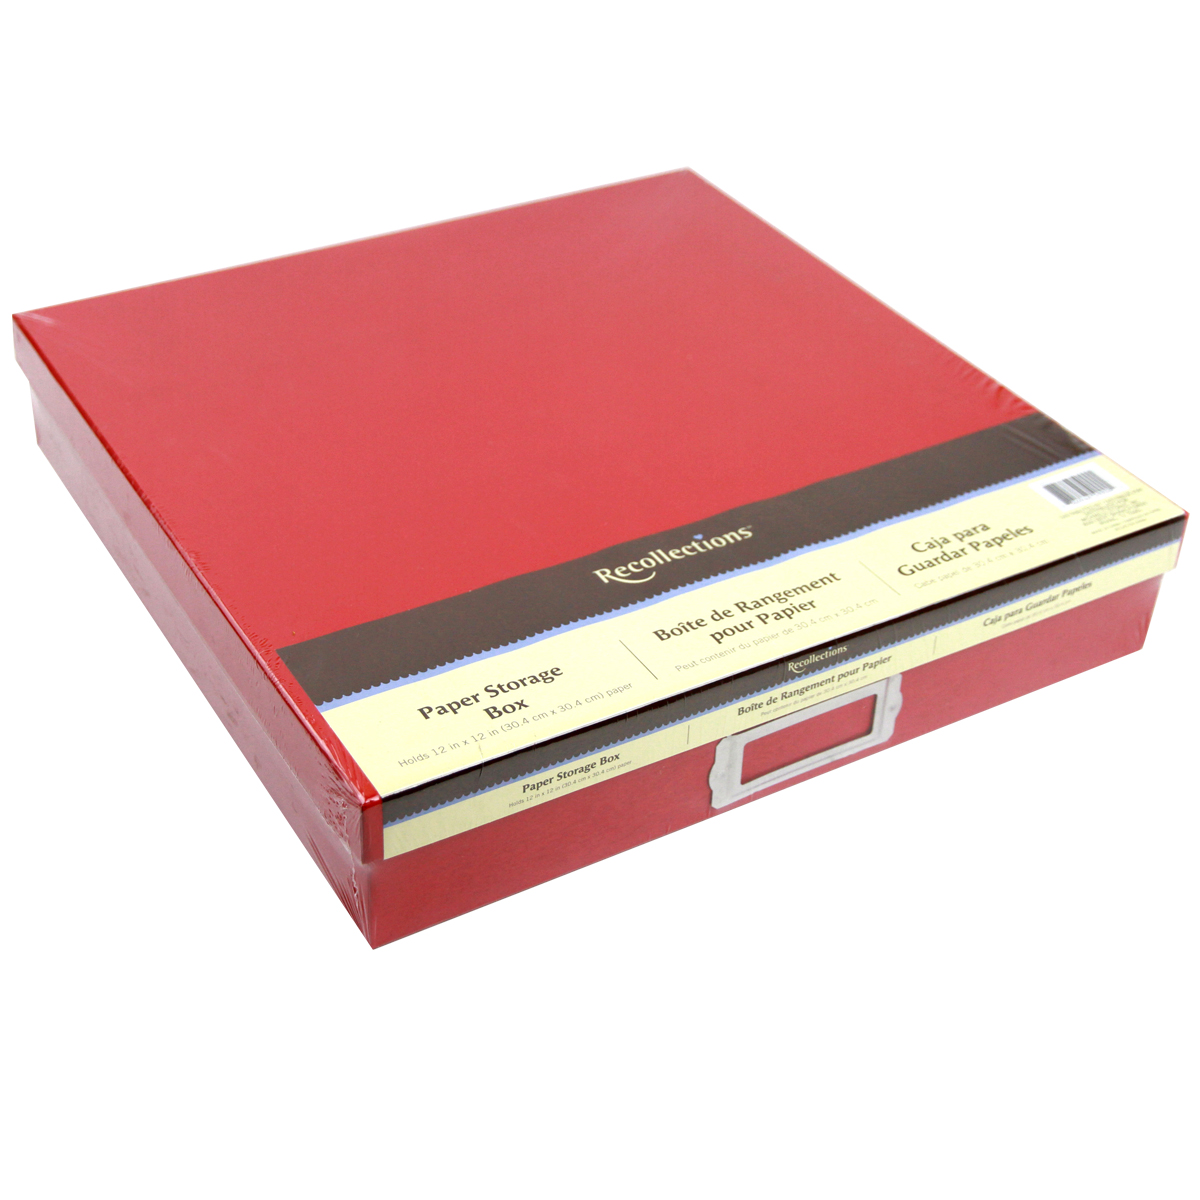 Recollectionstm Greeting Card And Craft Keeper  sc 1 st  Listitdallas & Recollections Photo Craft Storage Boxes - Listitdallas